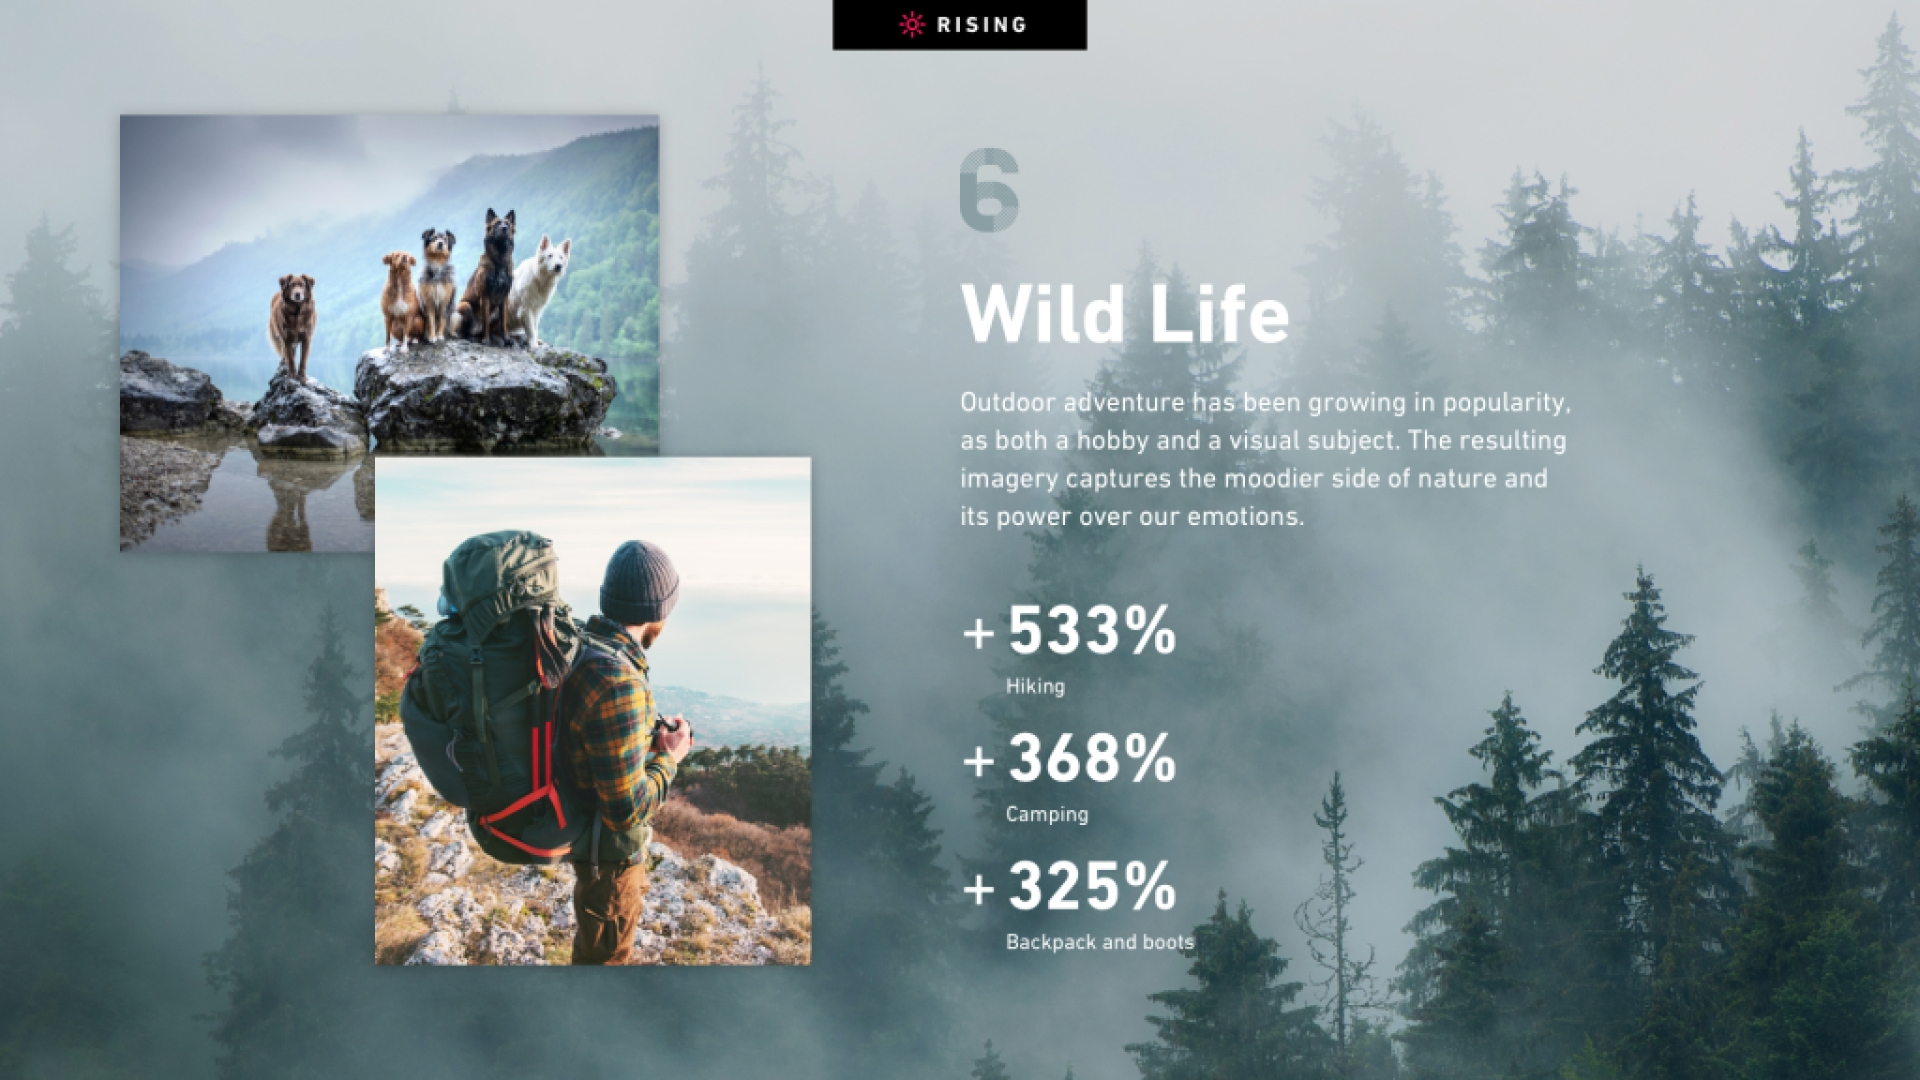 Wild Life slide from Shutterstock's Creative Trends Report